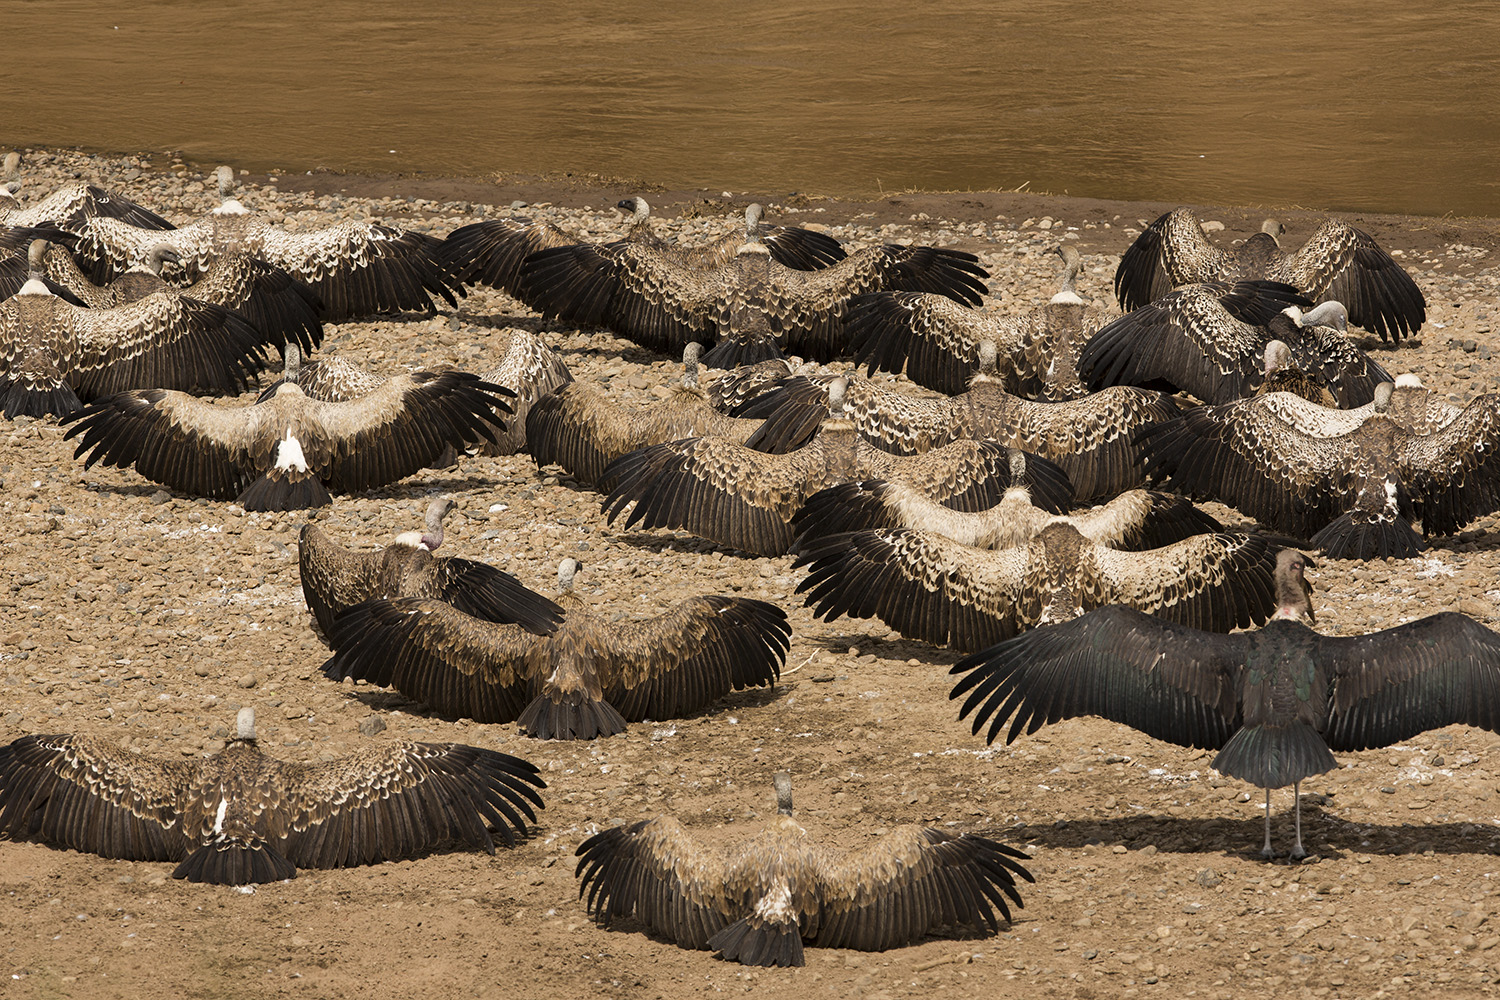 Vultures at rest waiting to feast on migration leftovers